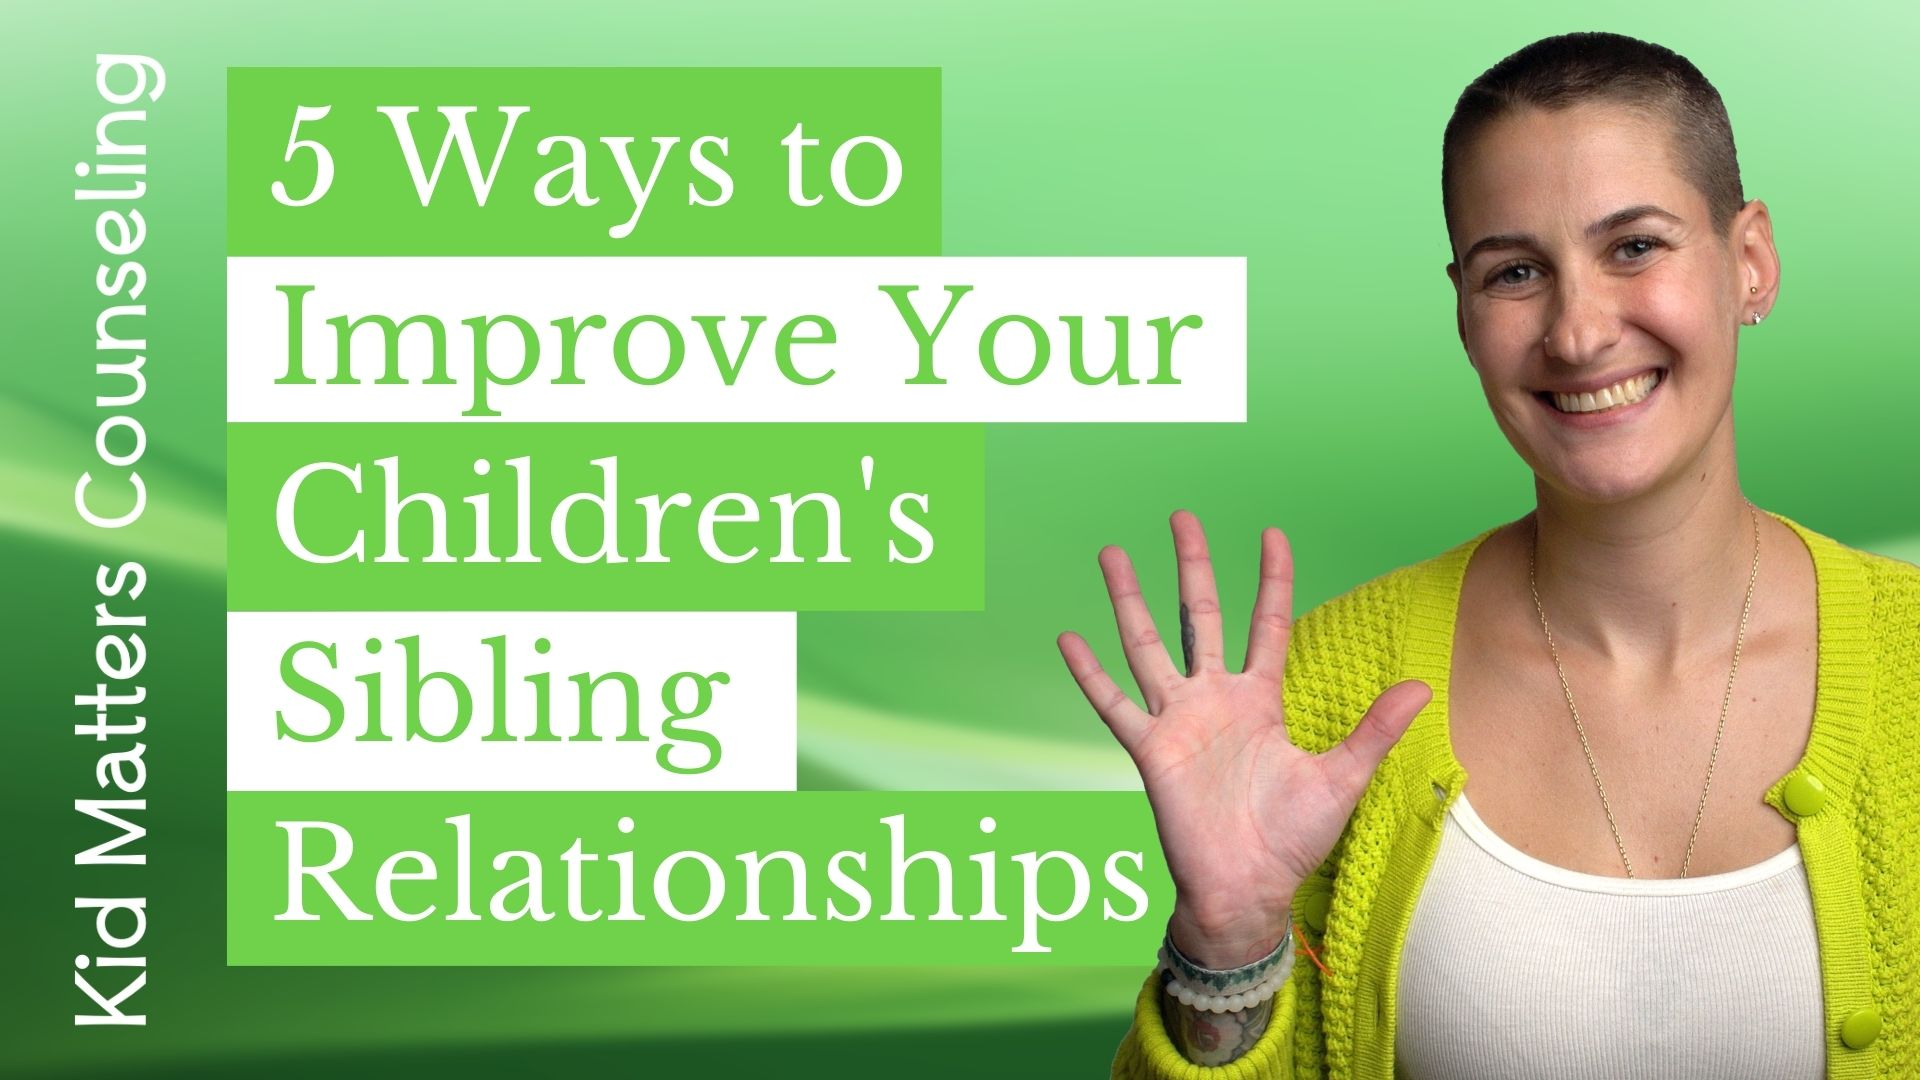 5 Ways to Improve Your Children's Sibling Relationships